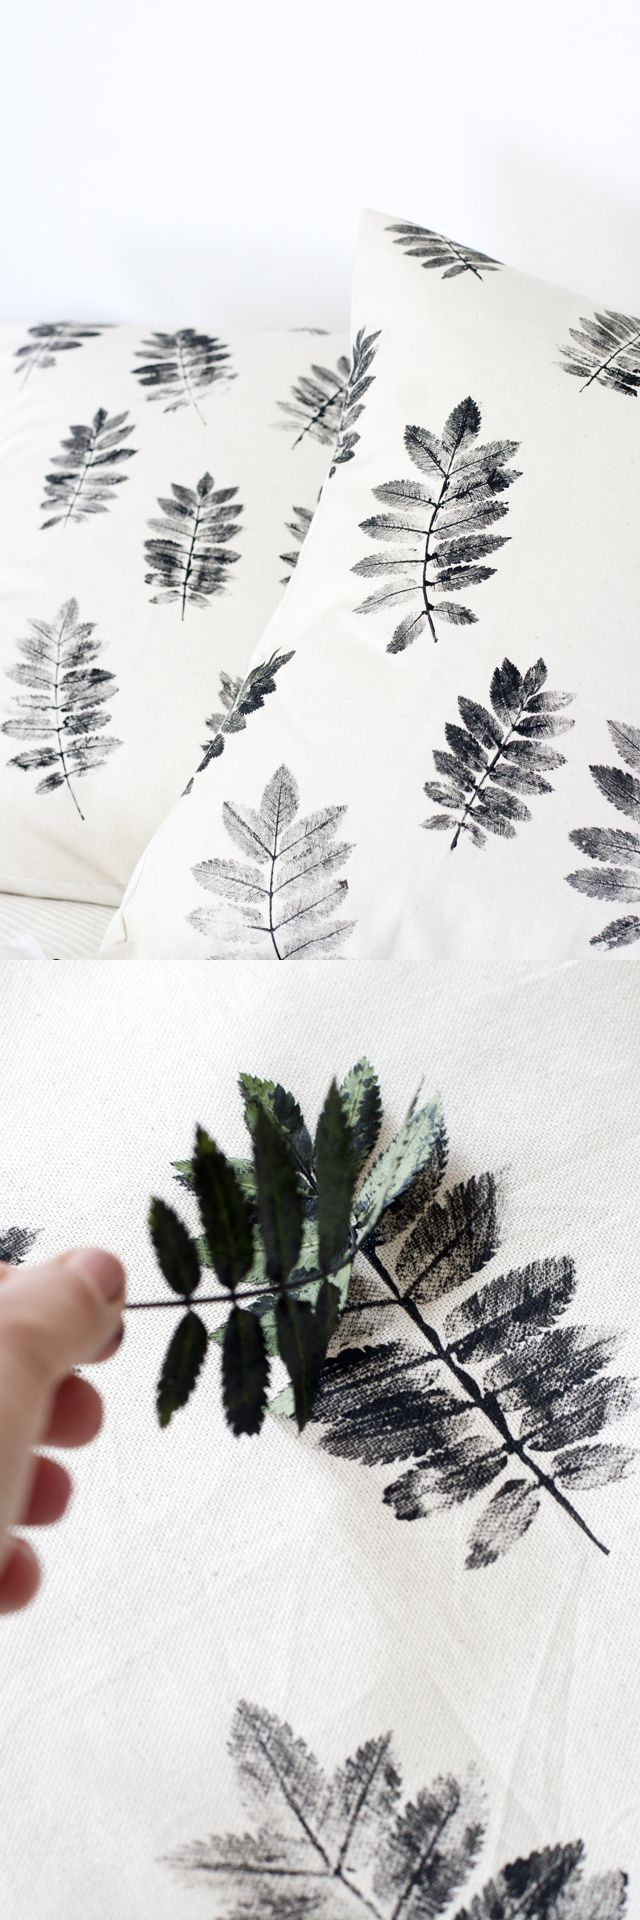 DIY plant print pillows project